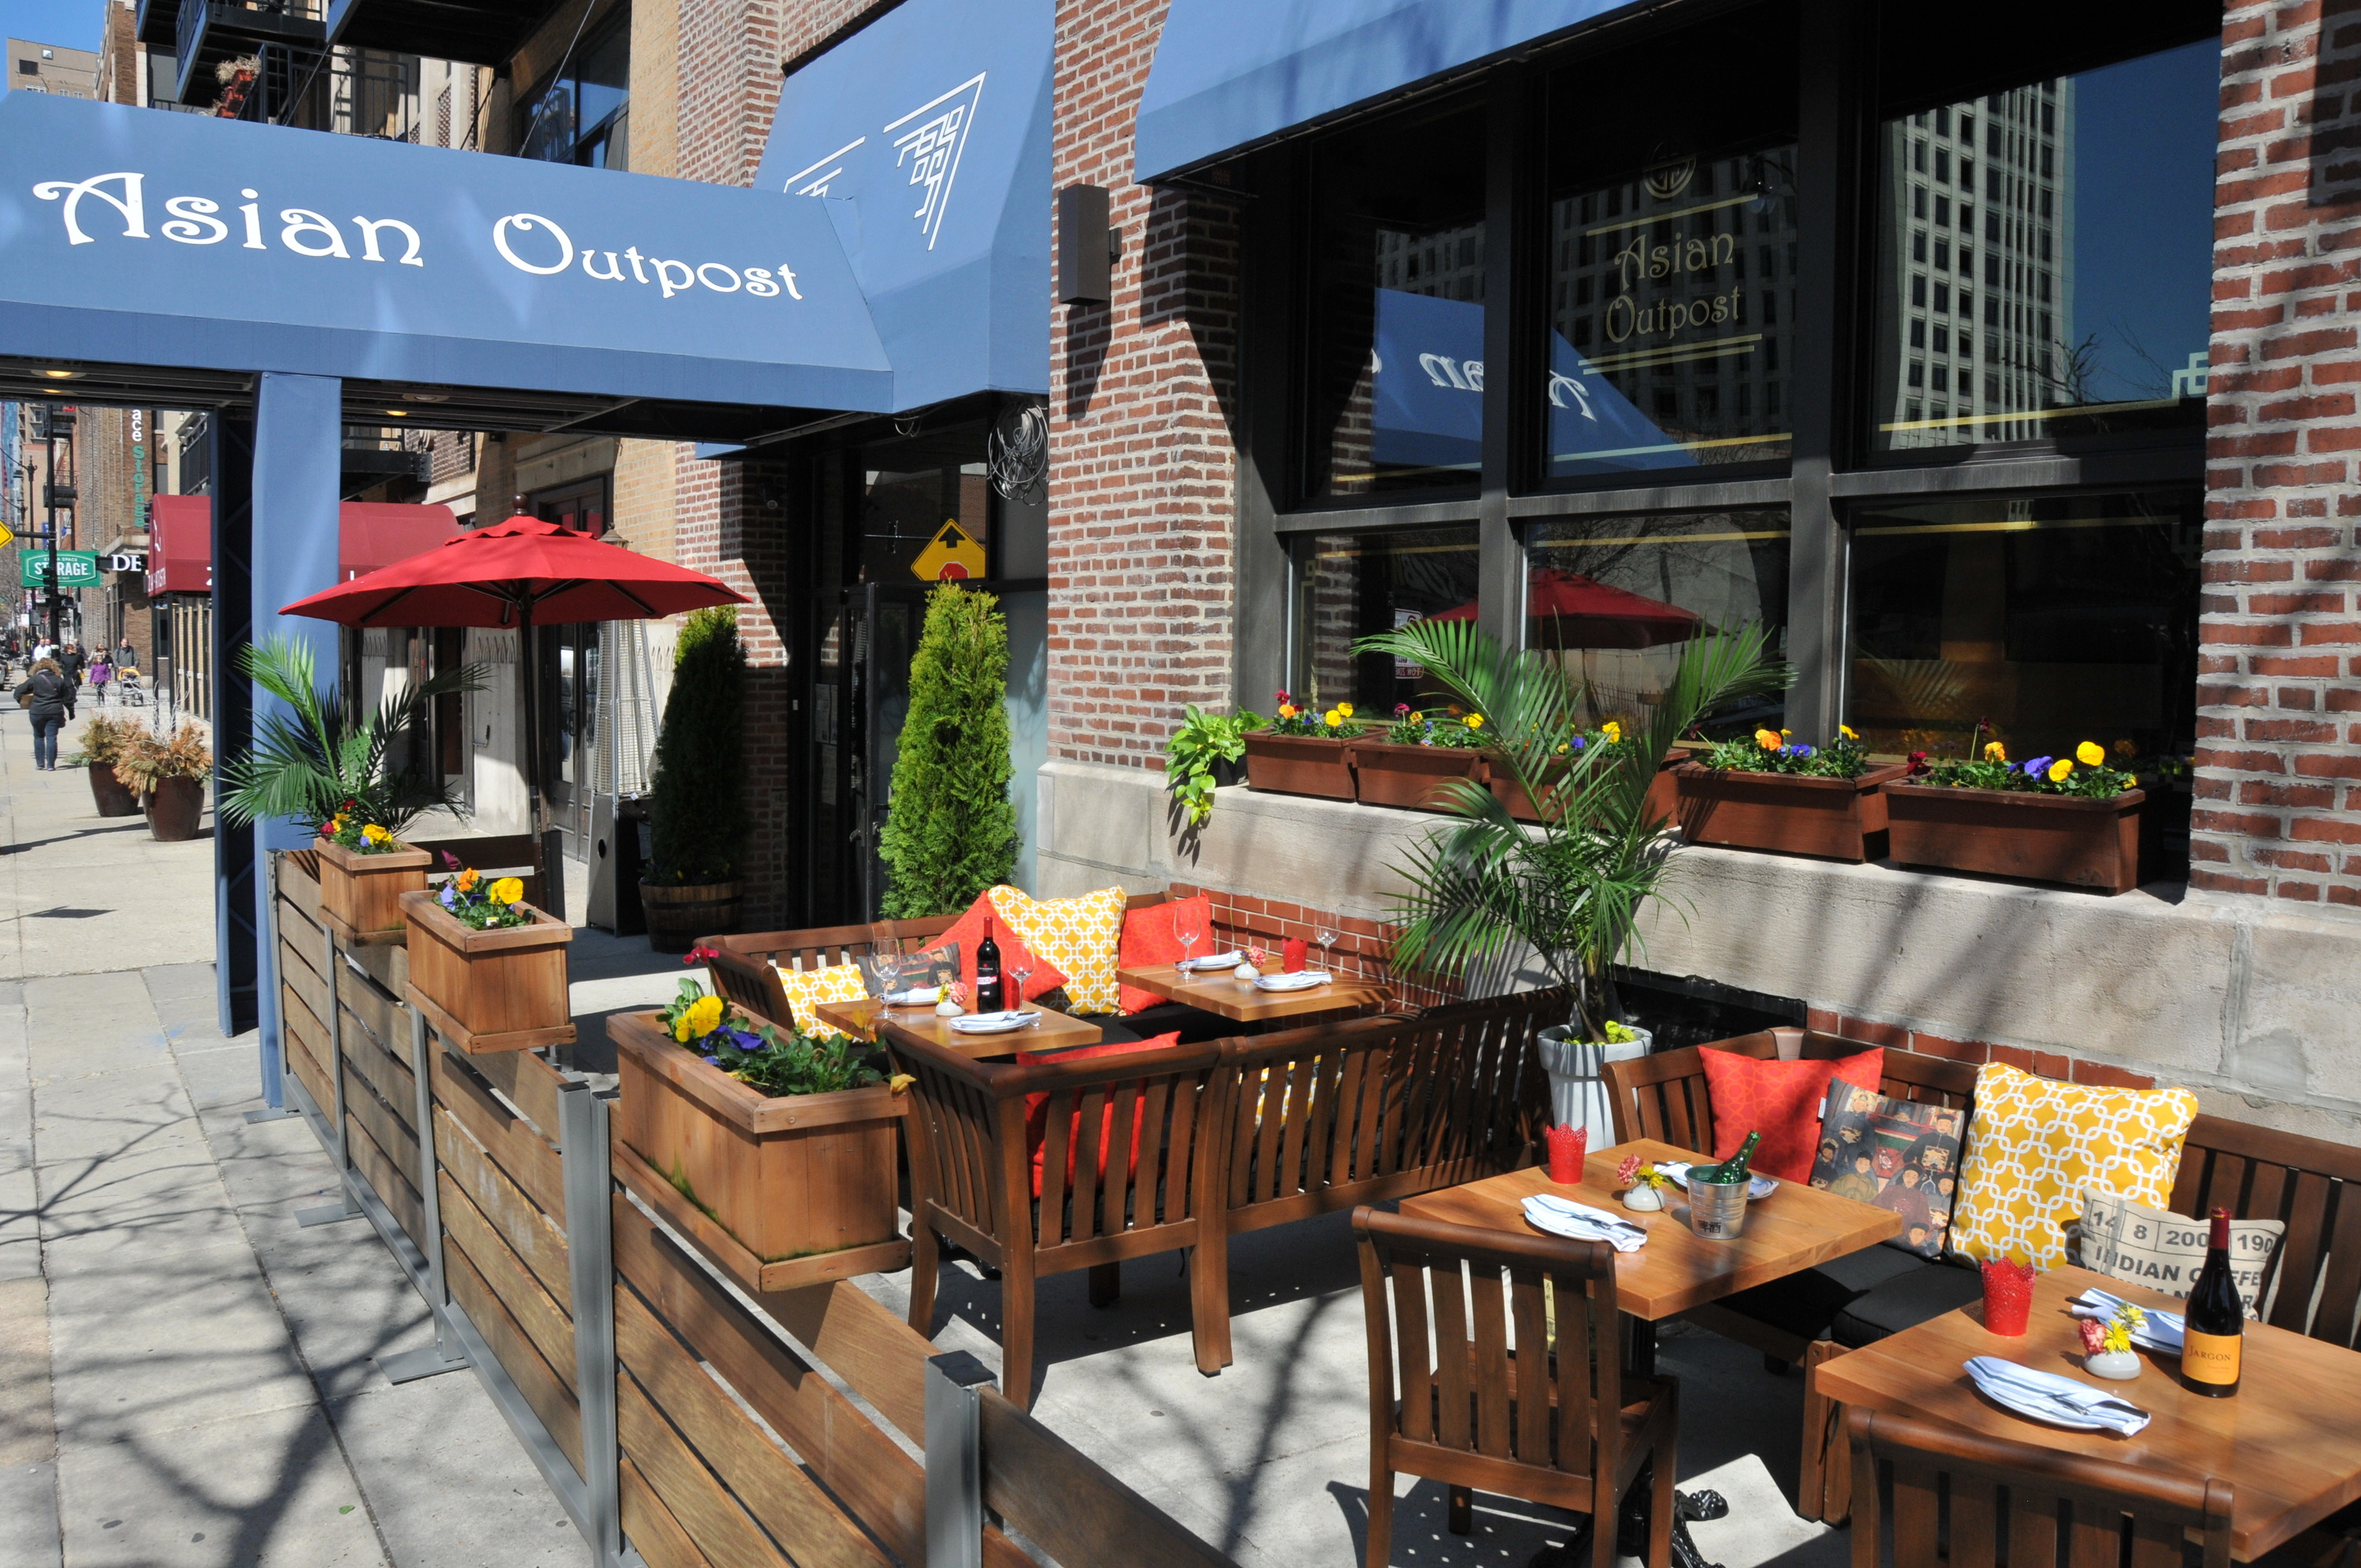 53 New Patios, Rooftop Bars, Beer Gardens And Outdoor Spaces